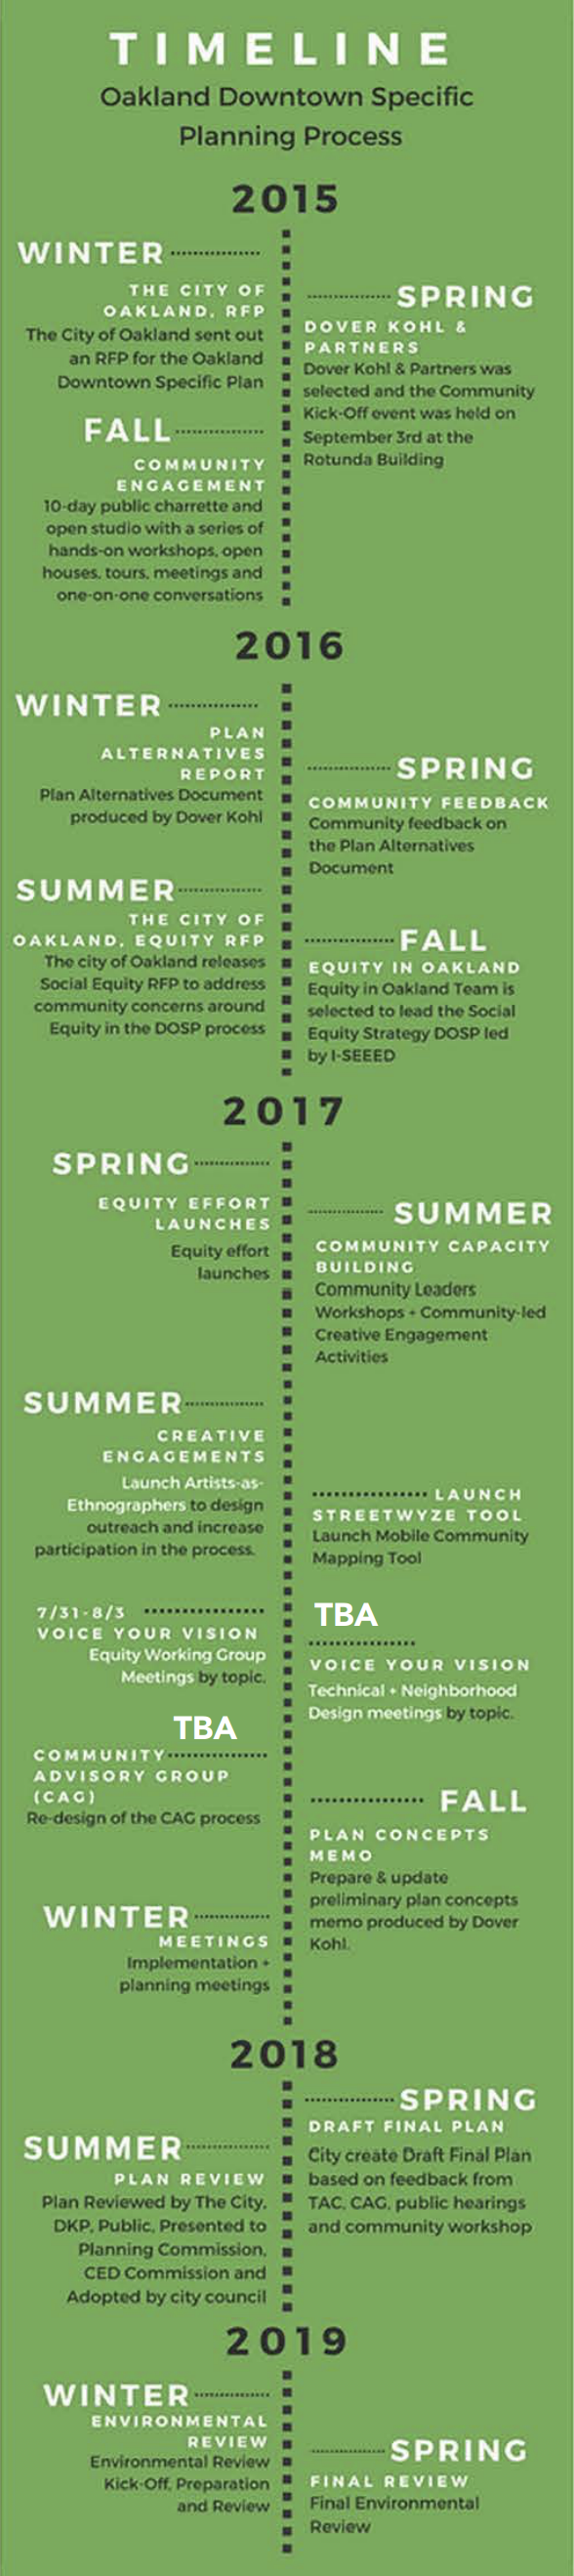 Oakland Downtown Specific Planning Process Timeline